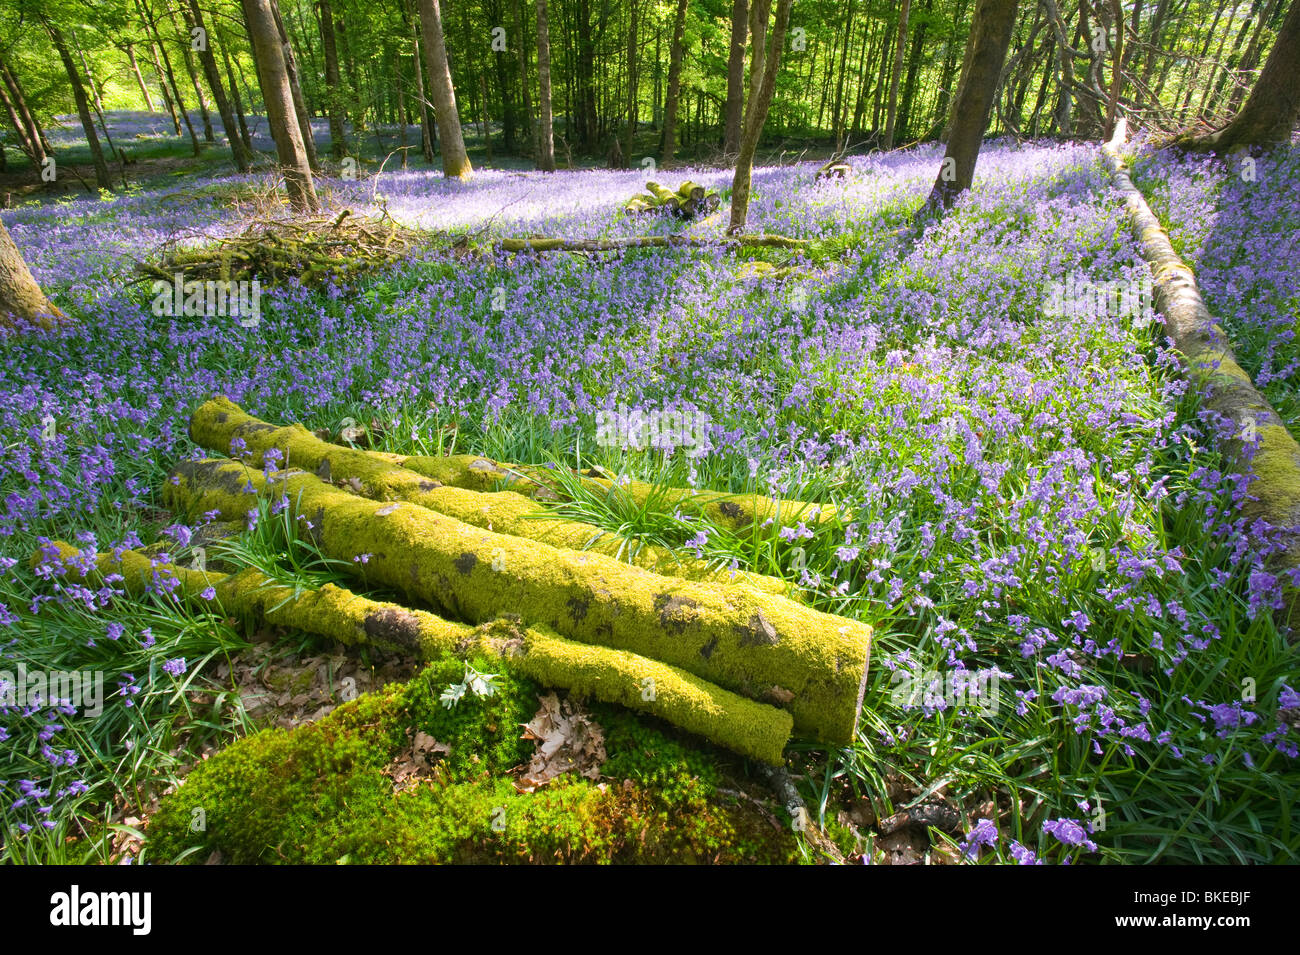 Bluebells in spring woodland Ambleside Cumbria UK Like many plants they are responding to climate change by flowering - Stock Image